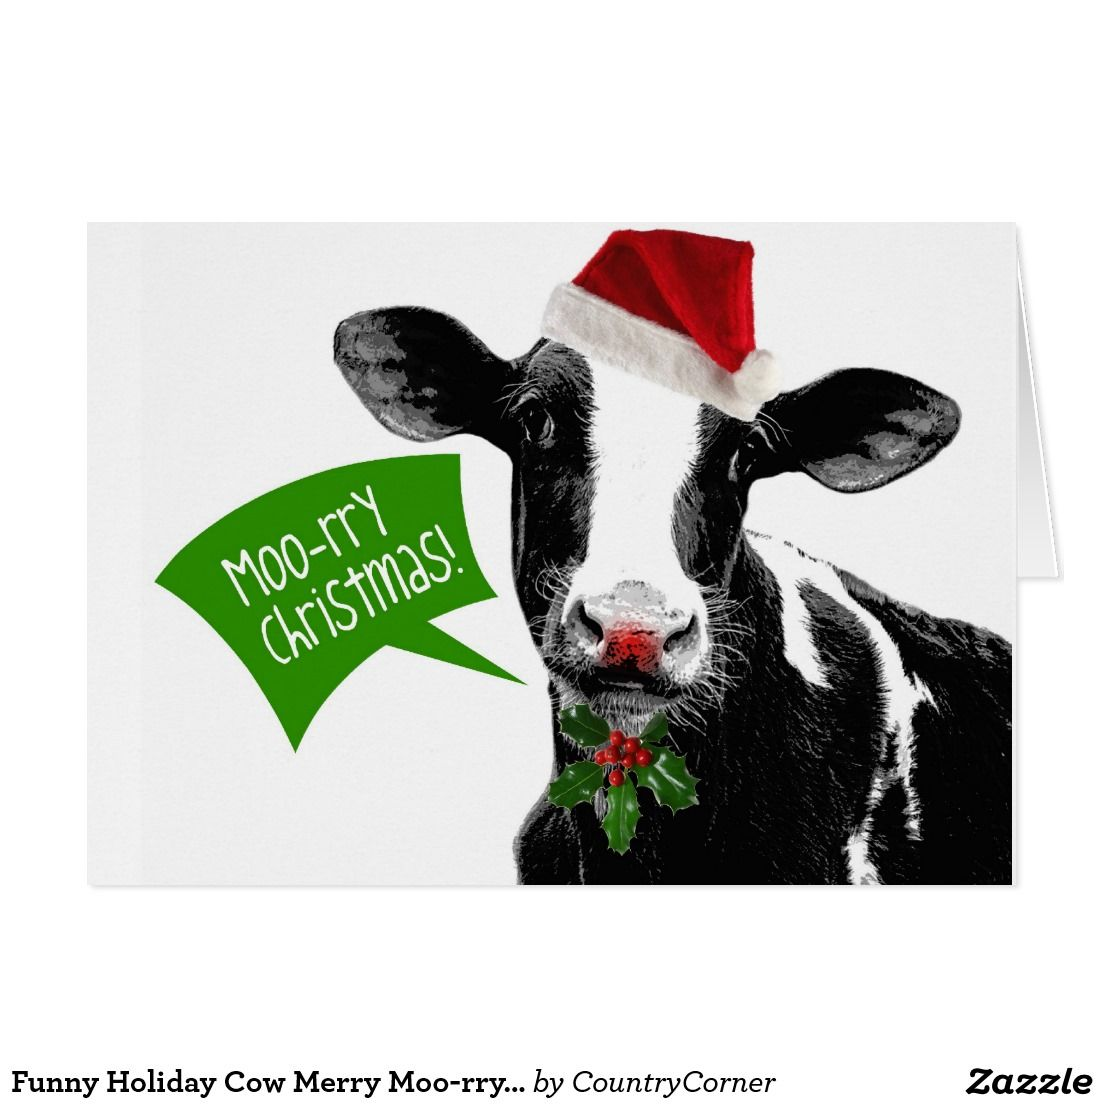 Funny holiday cow merry moo rry christmas card season greeting funny holiday cow merry moo rry christmas card m4hsunfo